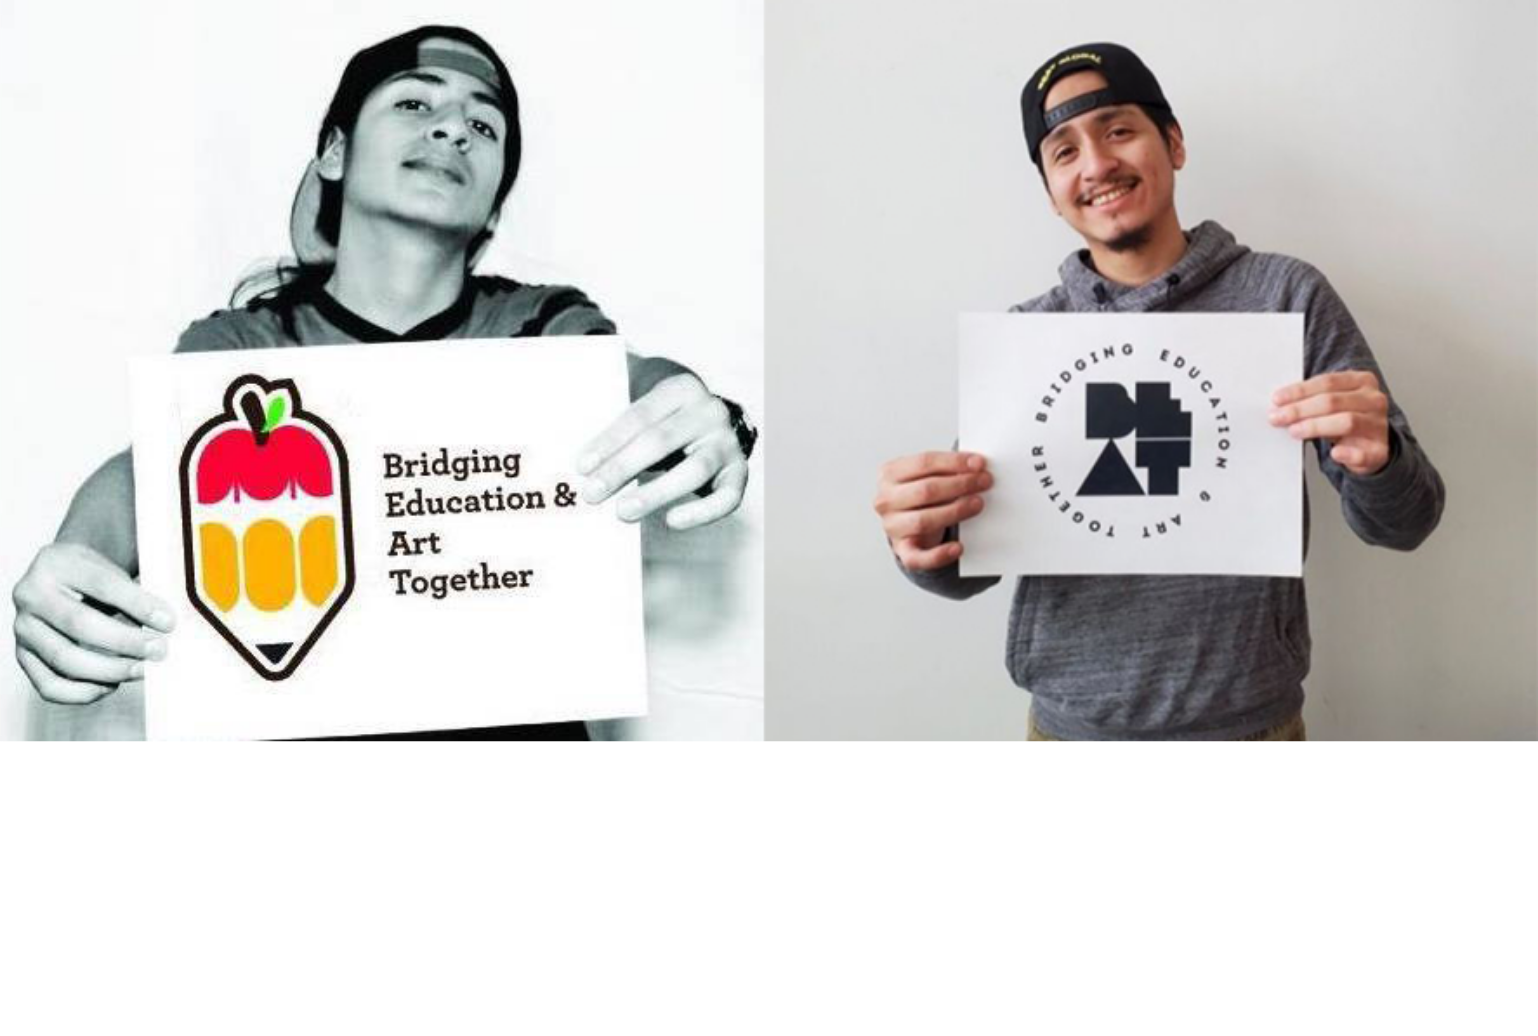 Side by side images of Luiggi holding a piece of paper with the BEAT logo, to show the transformation of both through the years. He is wearing a hoodie and backwards hat in both pictures.